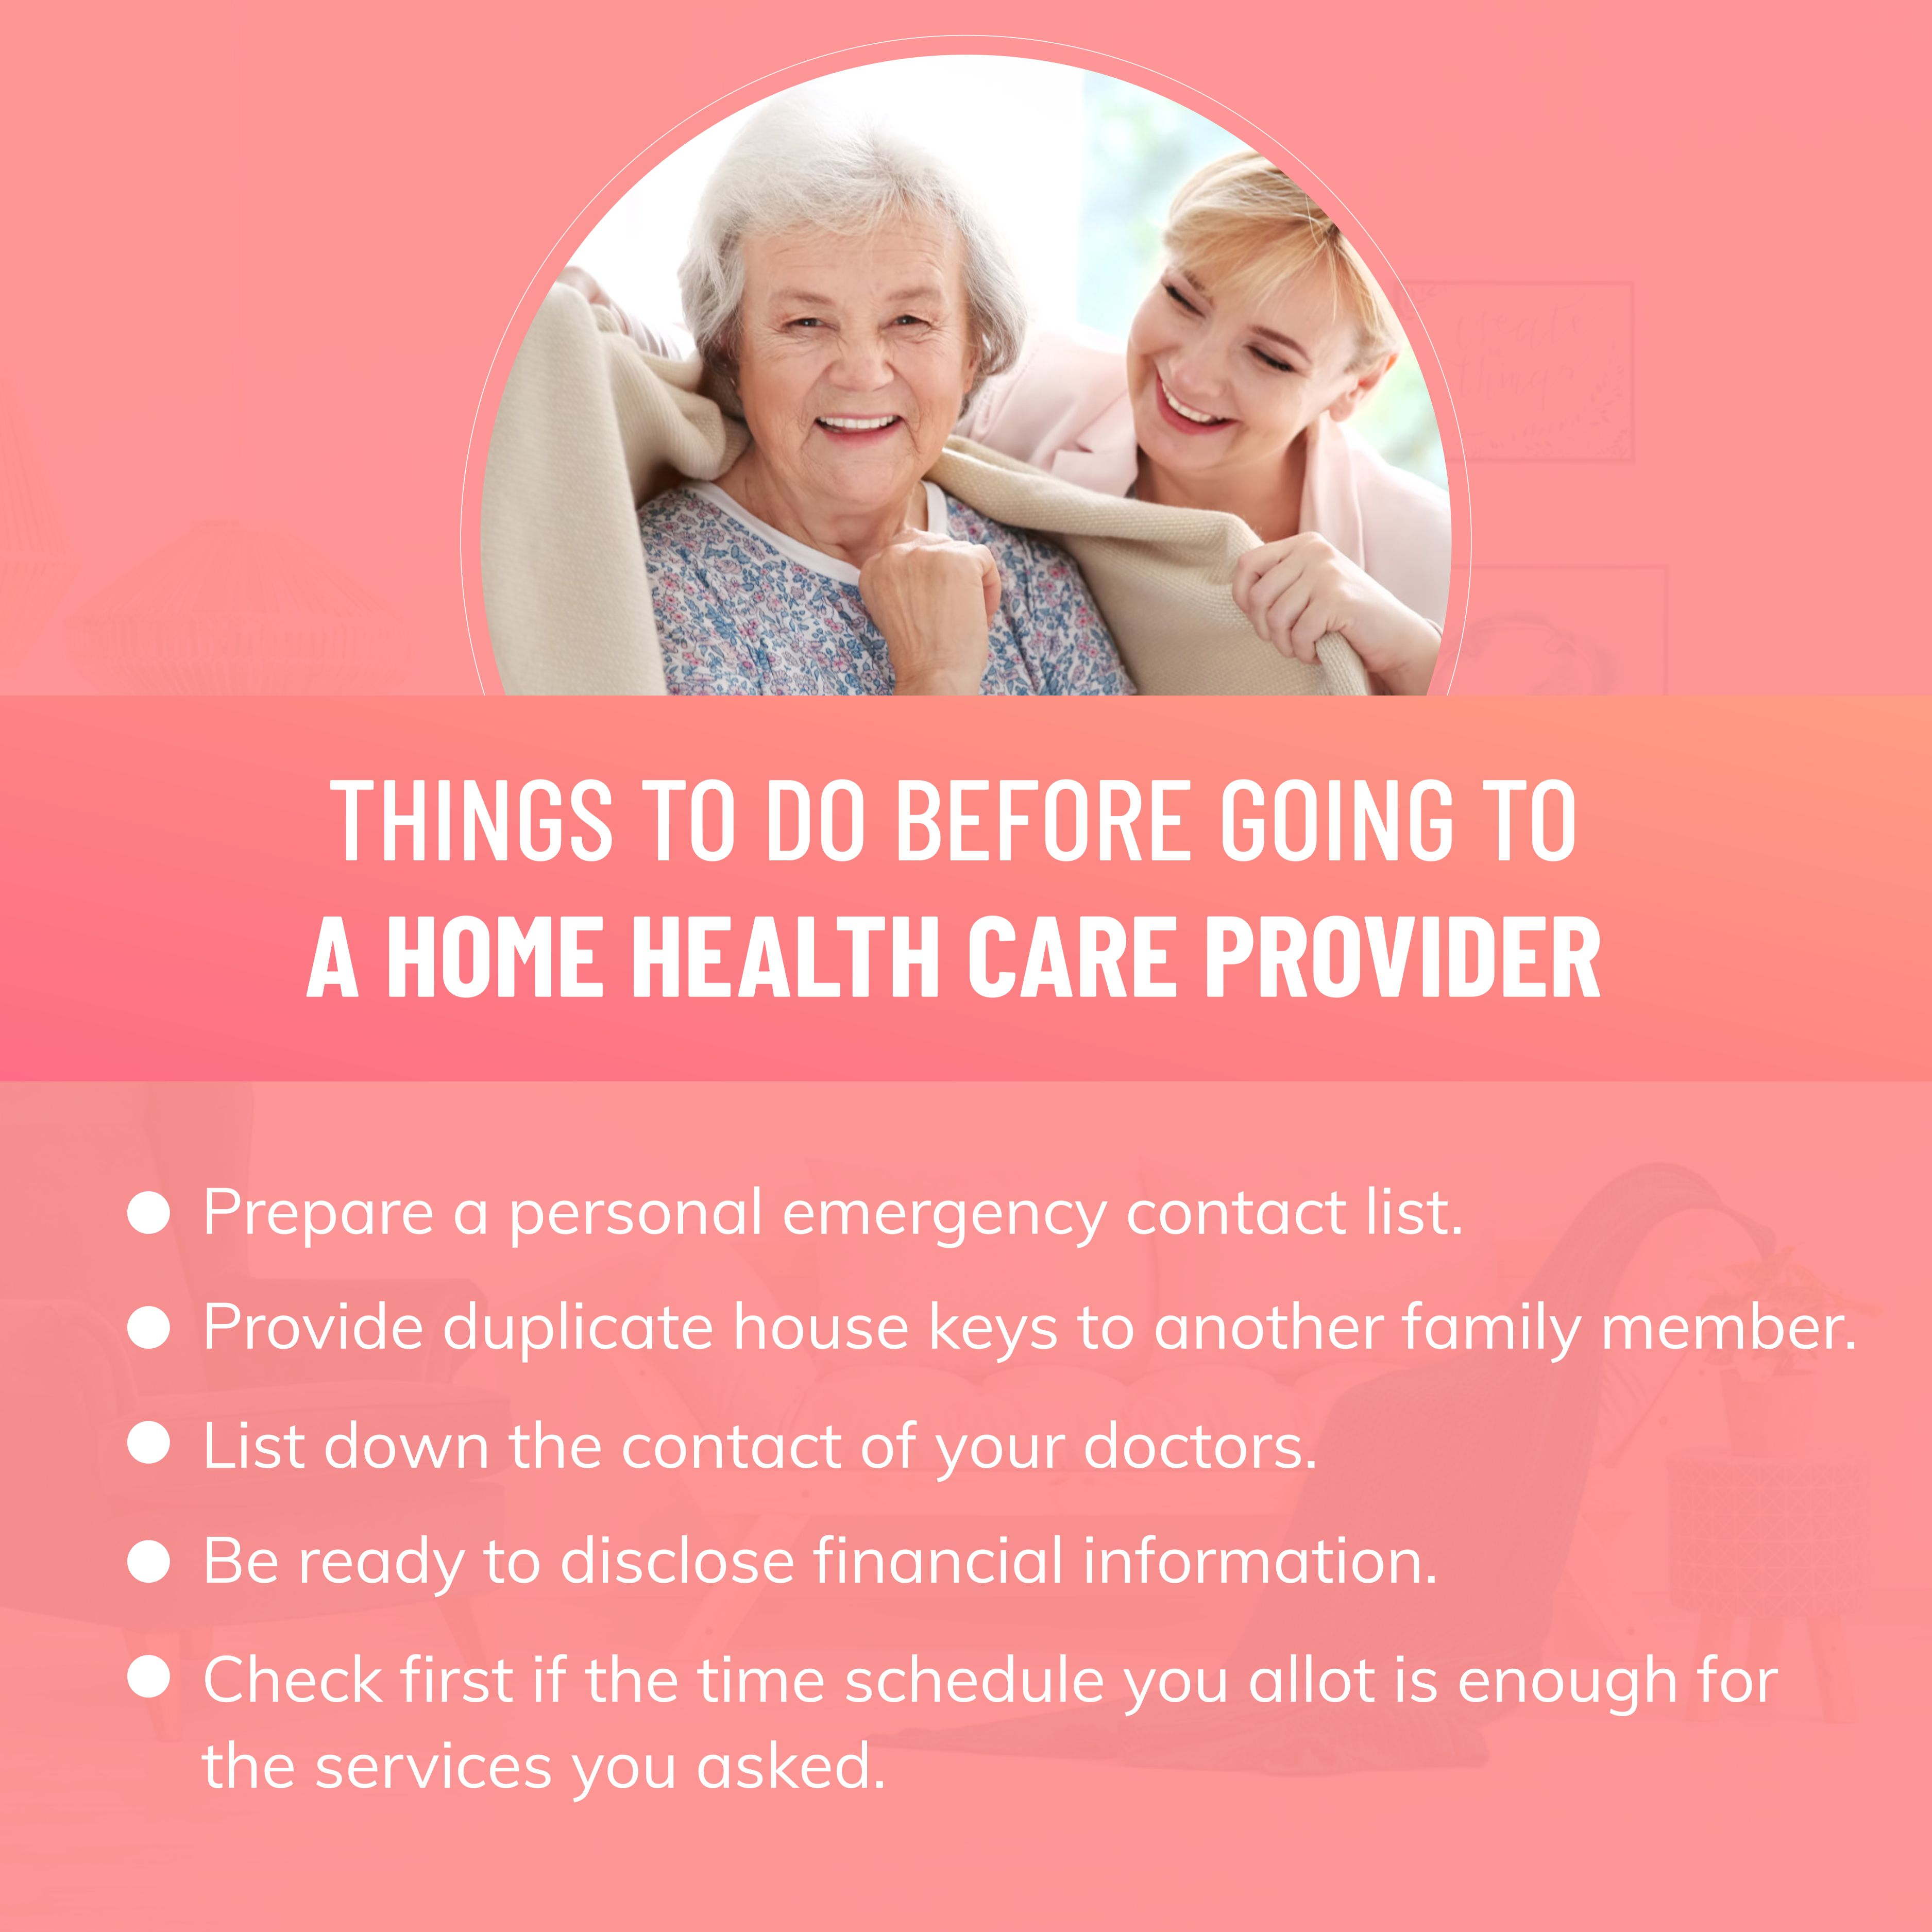 Things To Do Before Going To A Home Health Care Provider